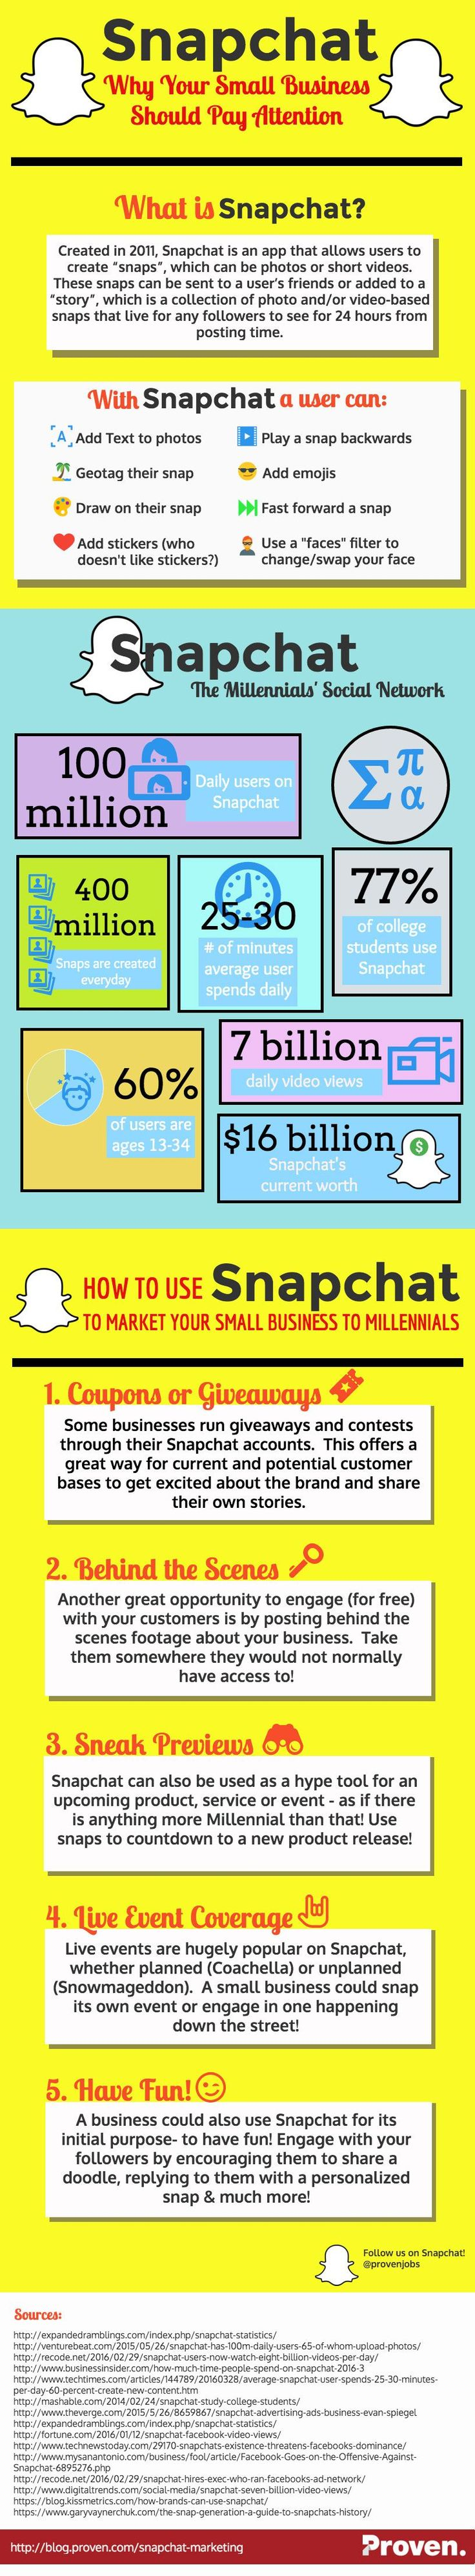 How to Use Snapchat to Market your Small Business! #Infographic #SnapChat…